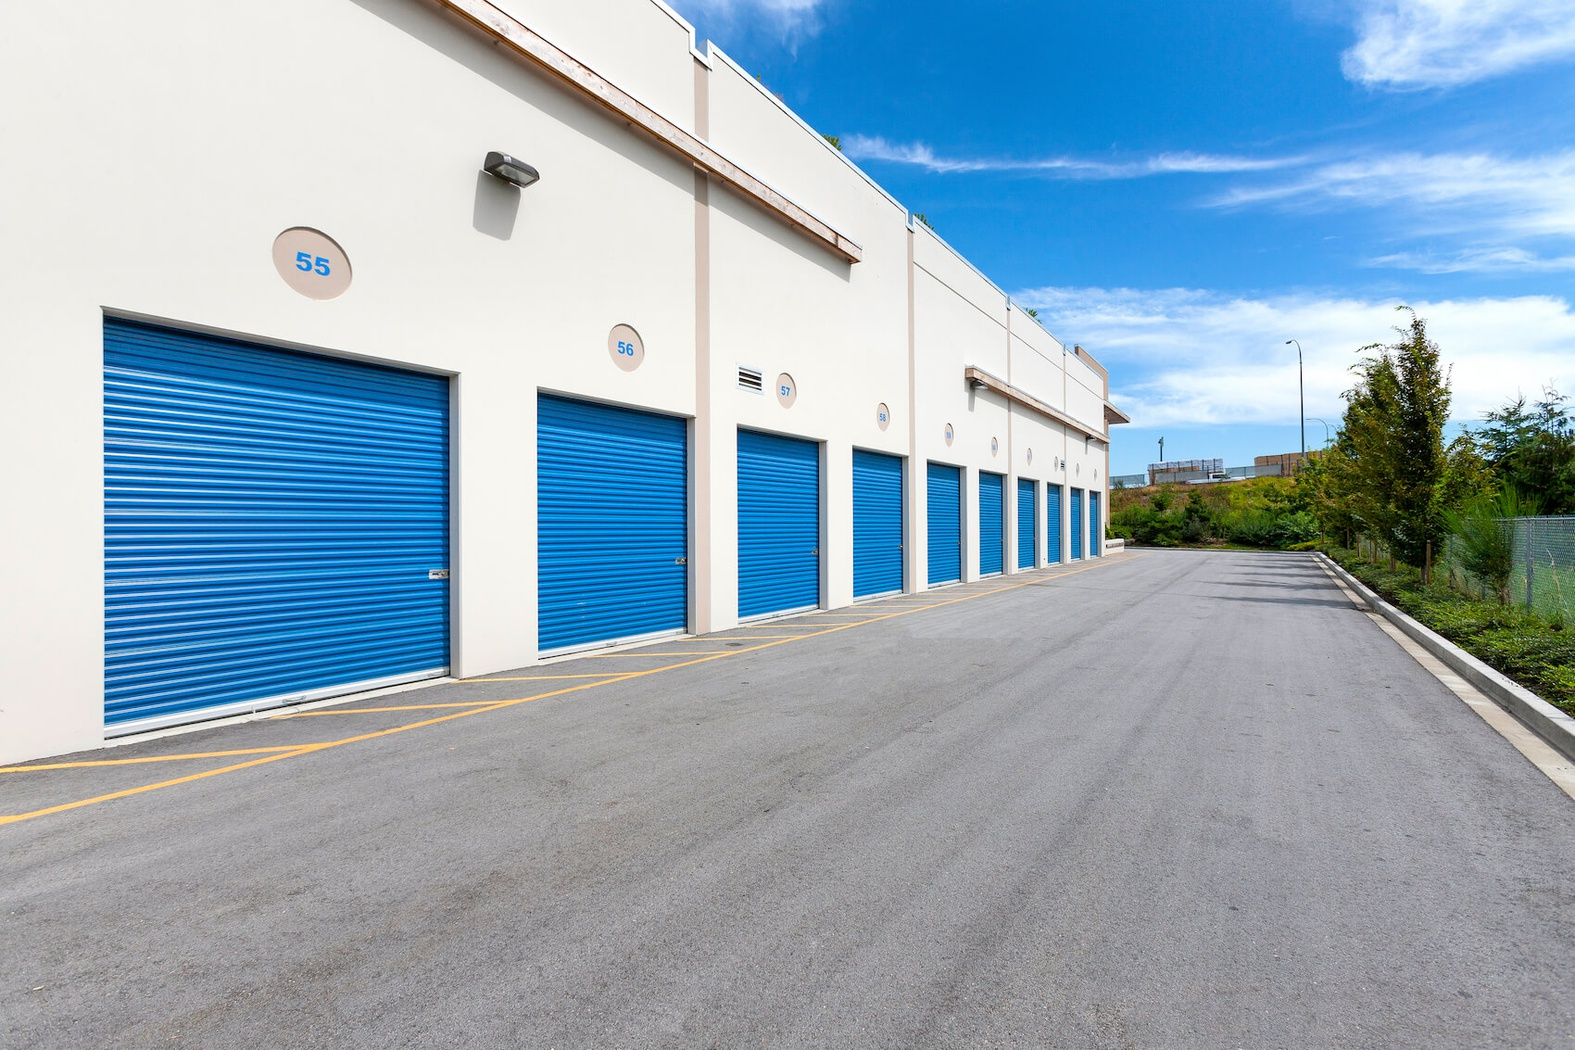 Rent Langley storage units at 19950 88 Avenue East #200. We offer a wide-range of affordable self storage units and your first 4 weeks are free!